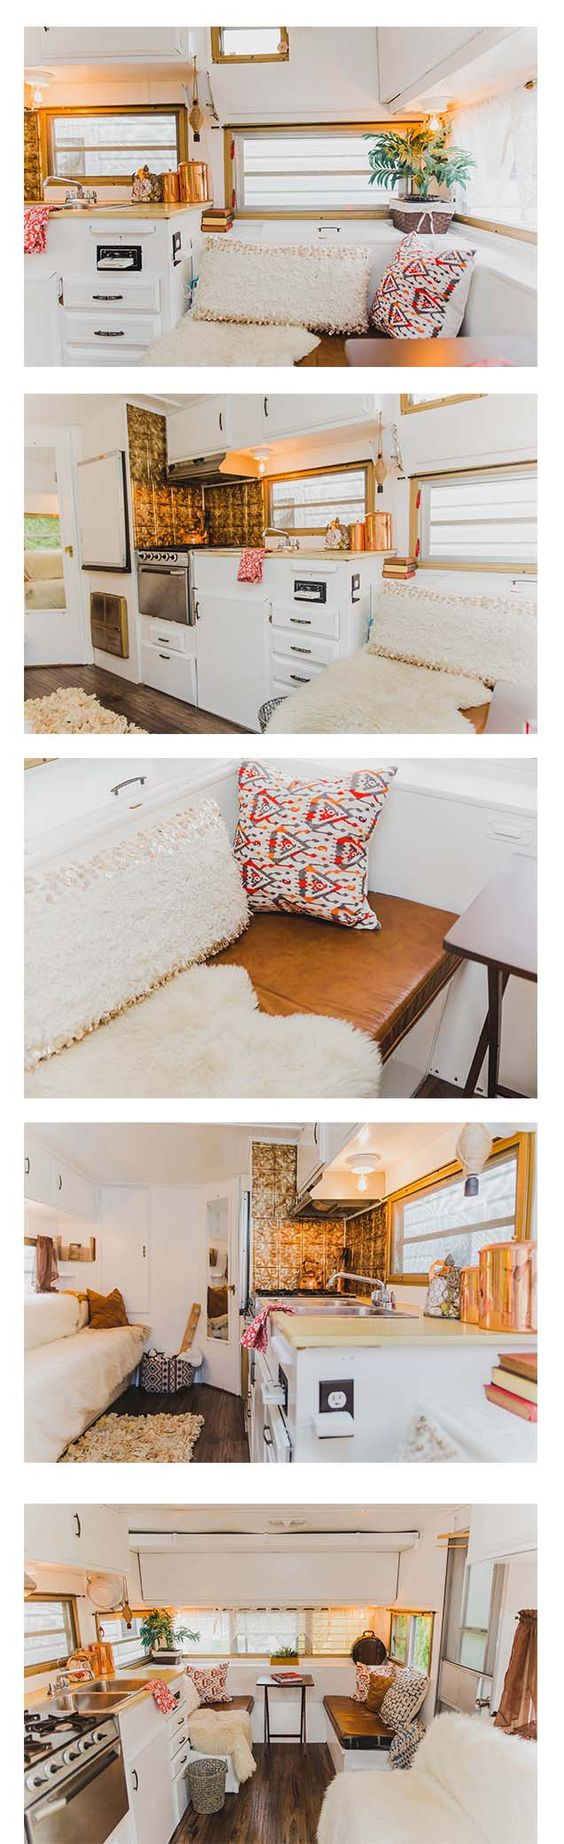 Our boho vintage travel trailer reno!! http://www.riversidephotography.ca/#!blogger-feed/c1y79/search/trailer: